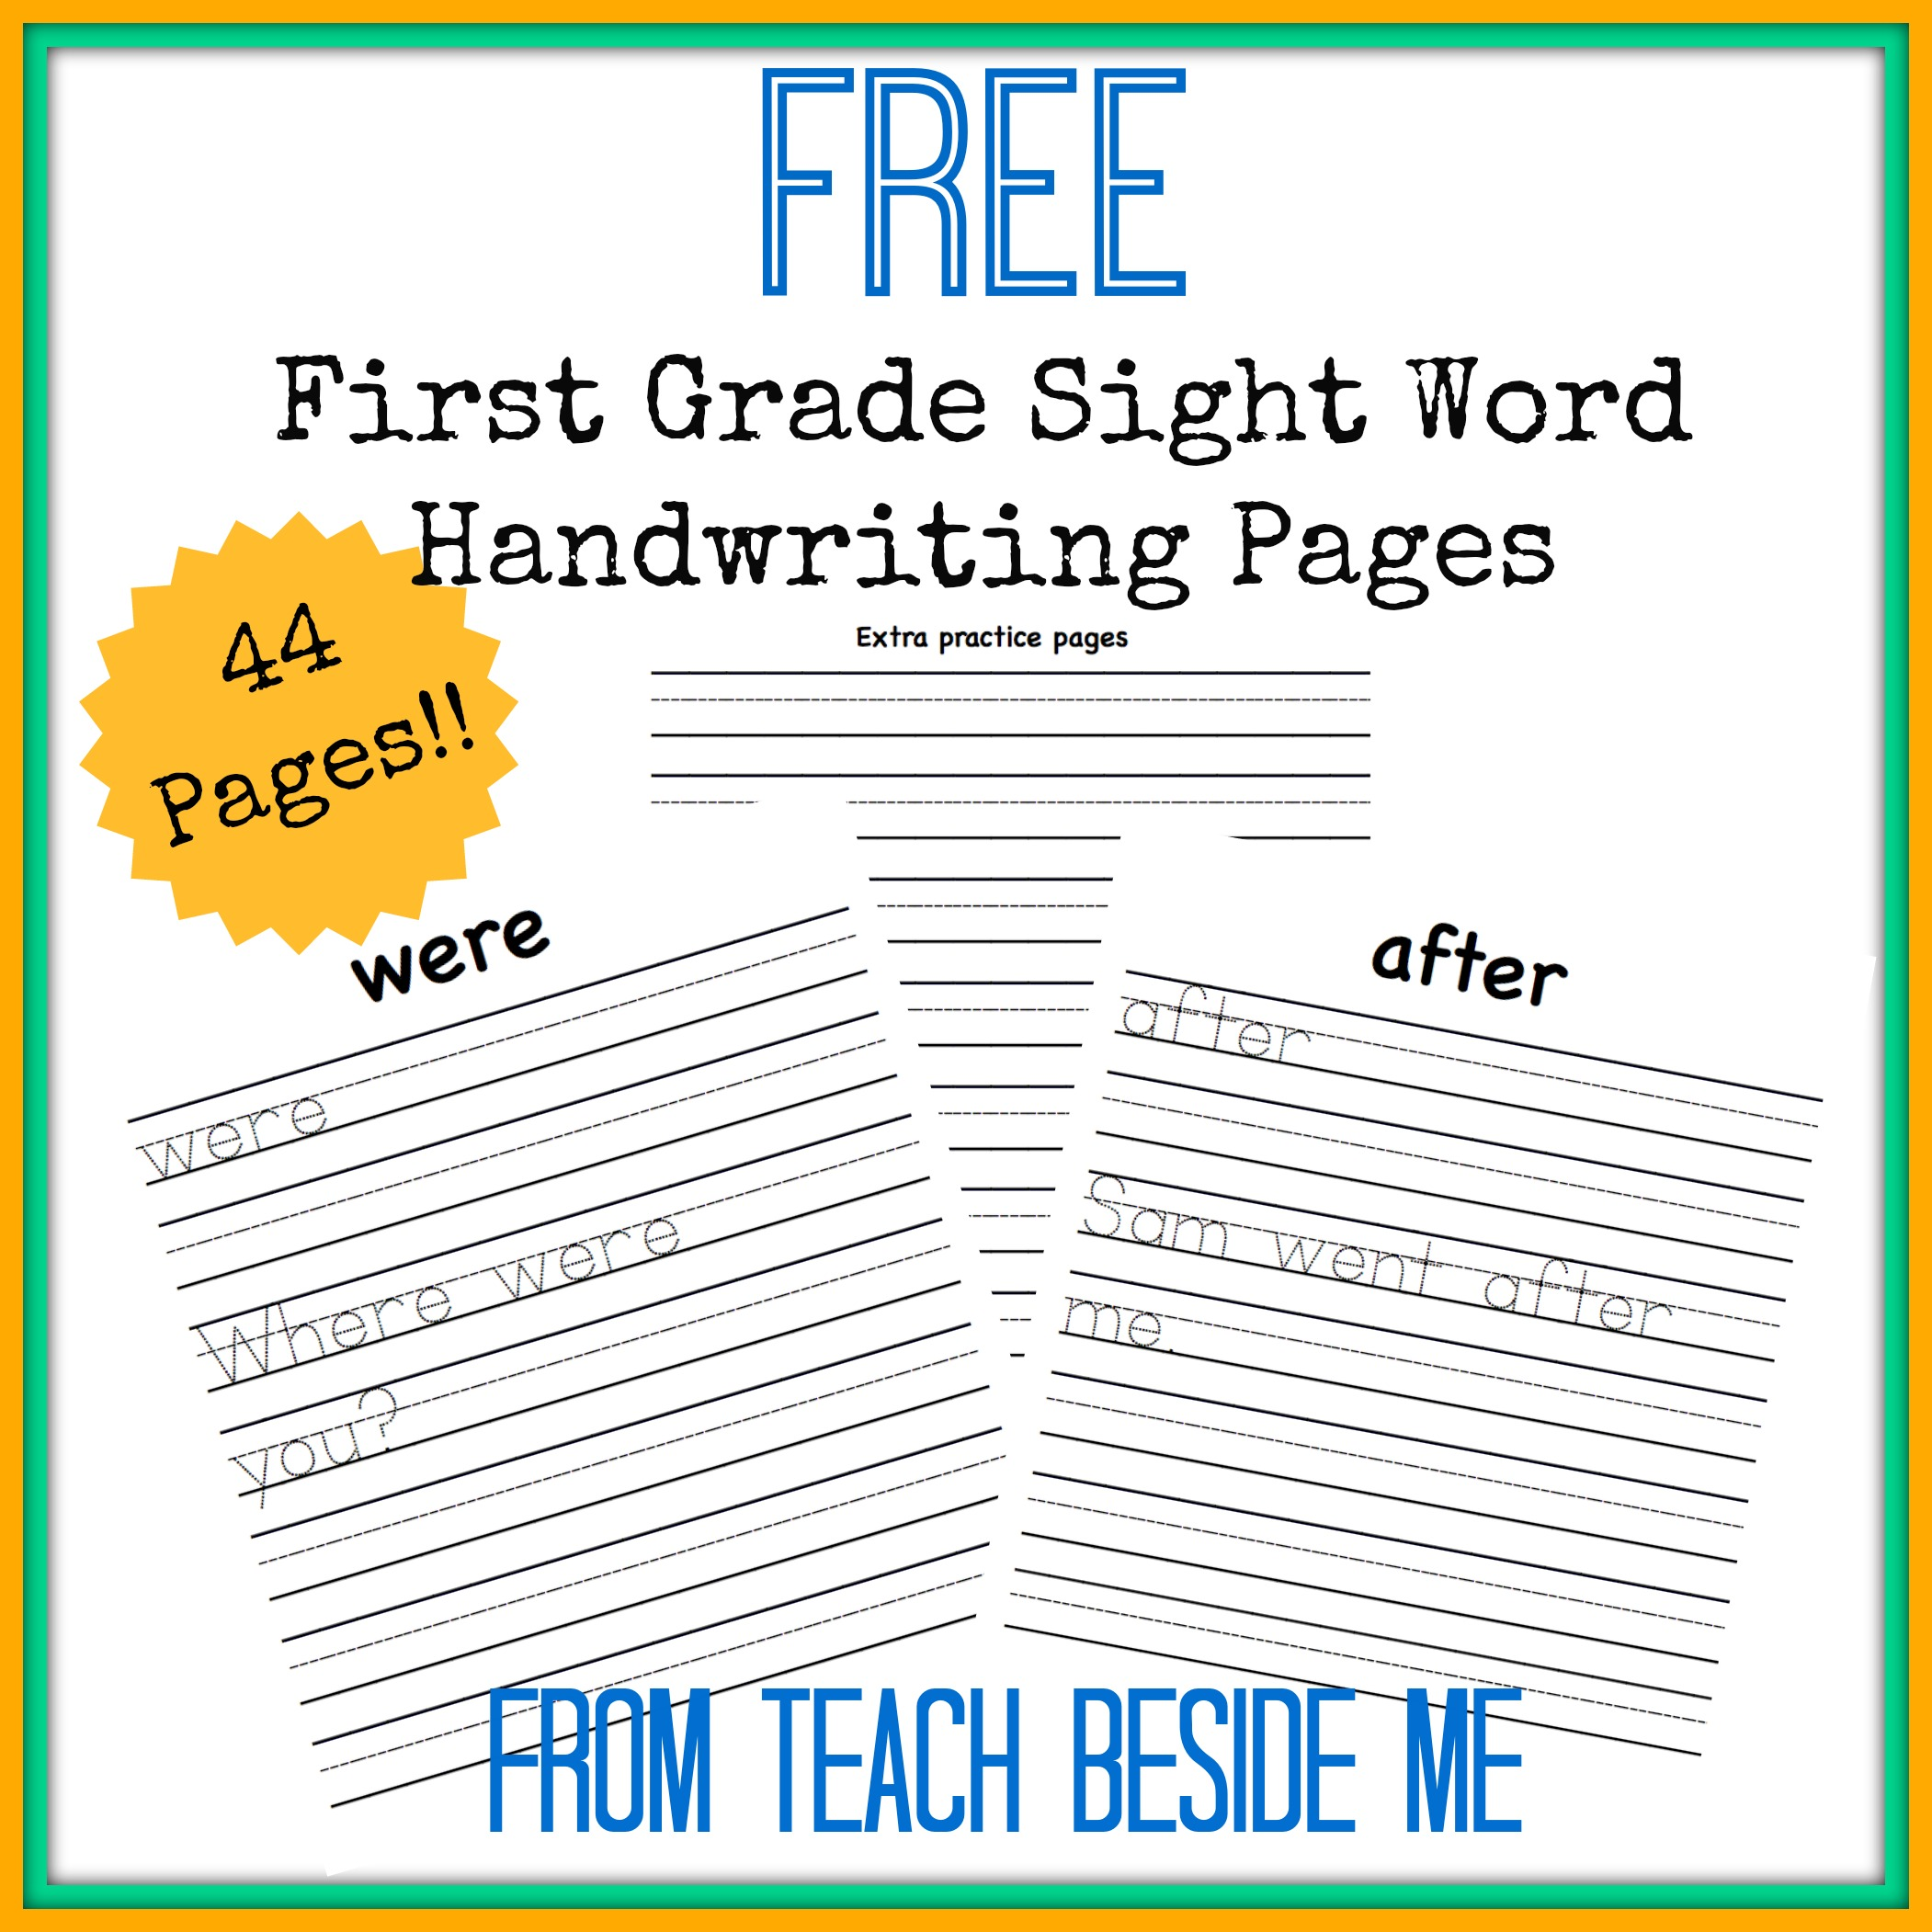 Worksheets 1st Grade Sight Word Worksheets free first grade sight word handwriting pages homeschool deals